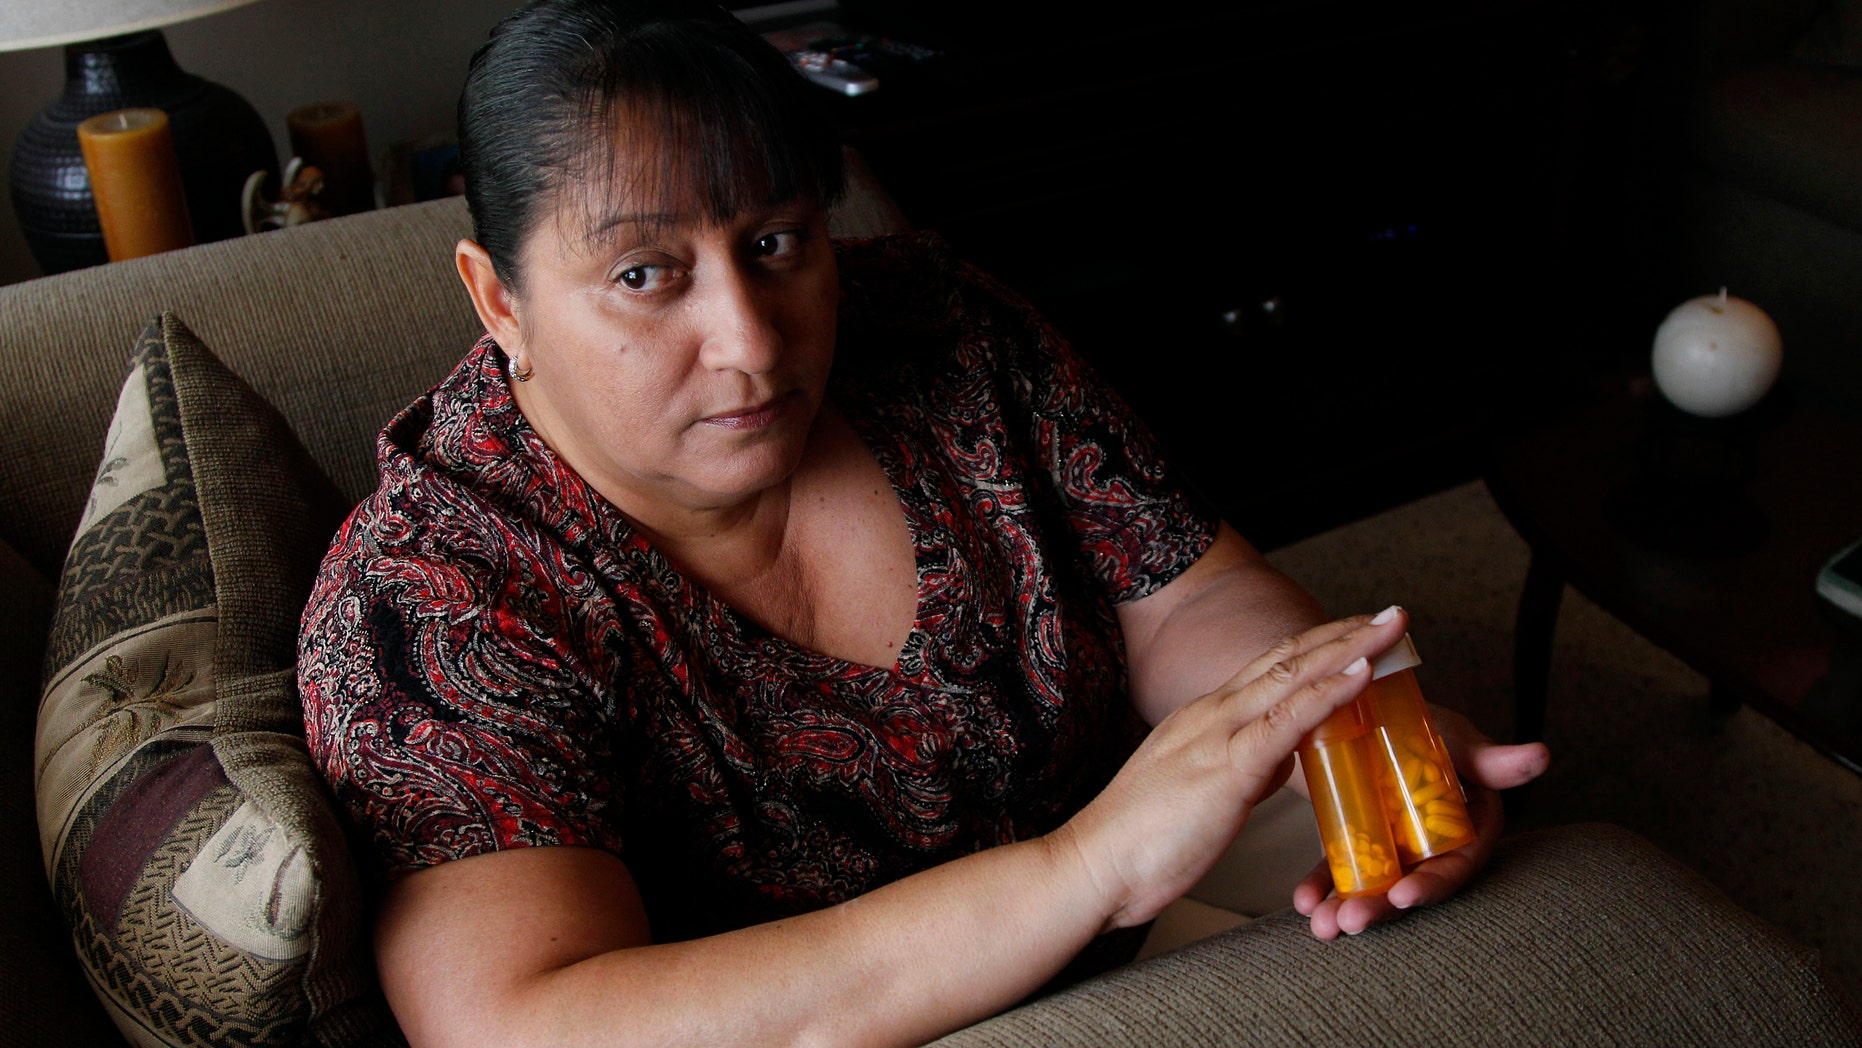 Sandra Pico, 52,  holds medications she takes, at her home in North Miami Beach, Fla. Pico makes about $15,000 a year working about 20 hours a week as a home health aide, a bit too much to qualify for Medicaid.